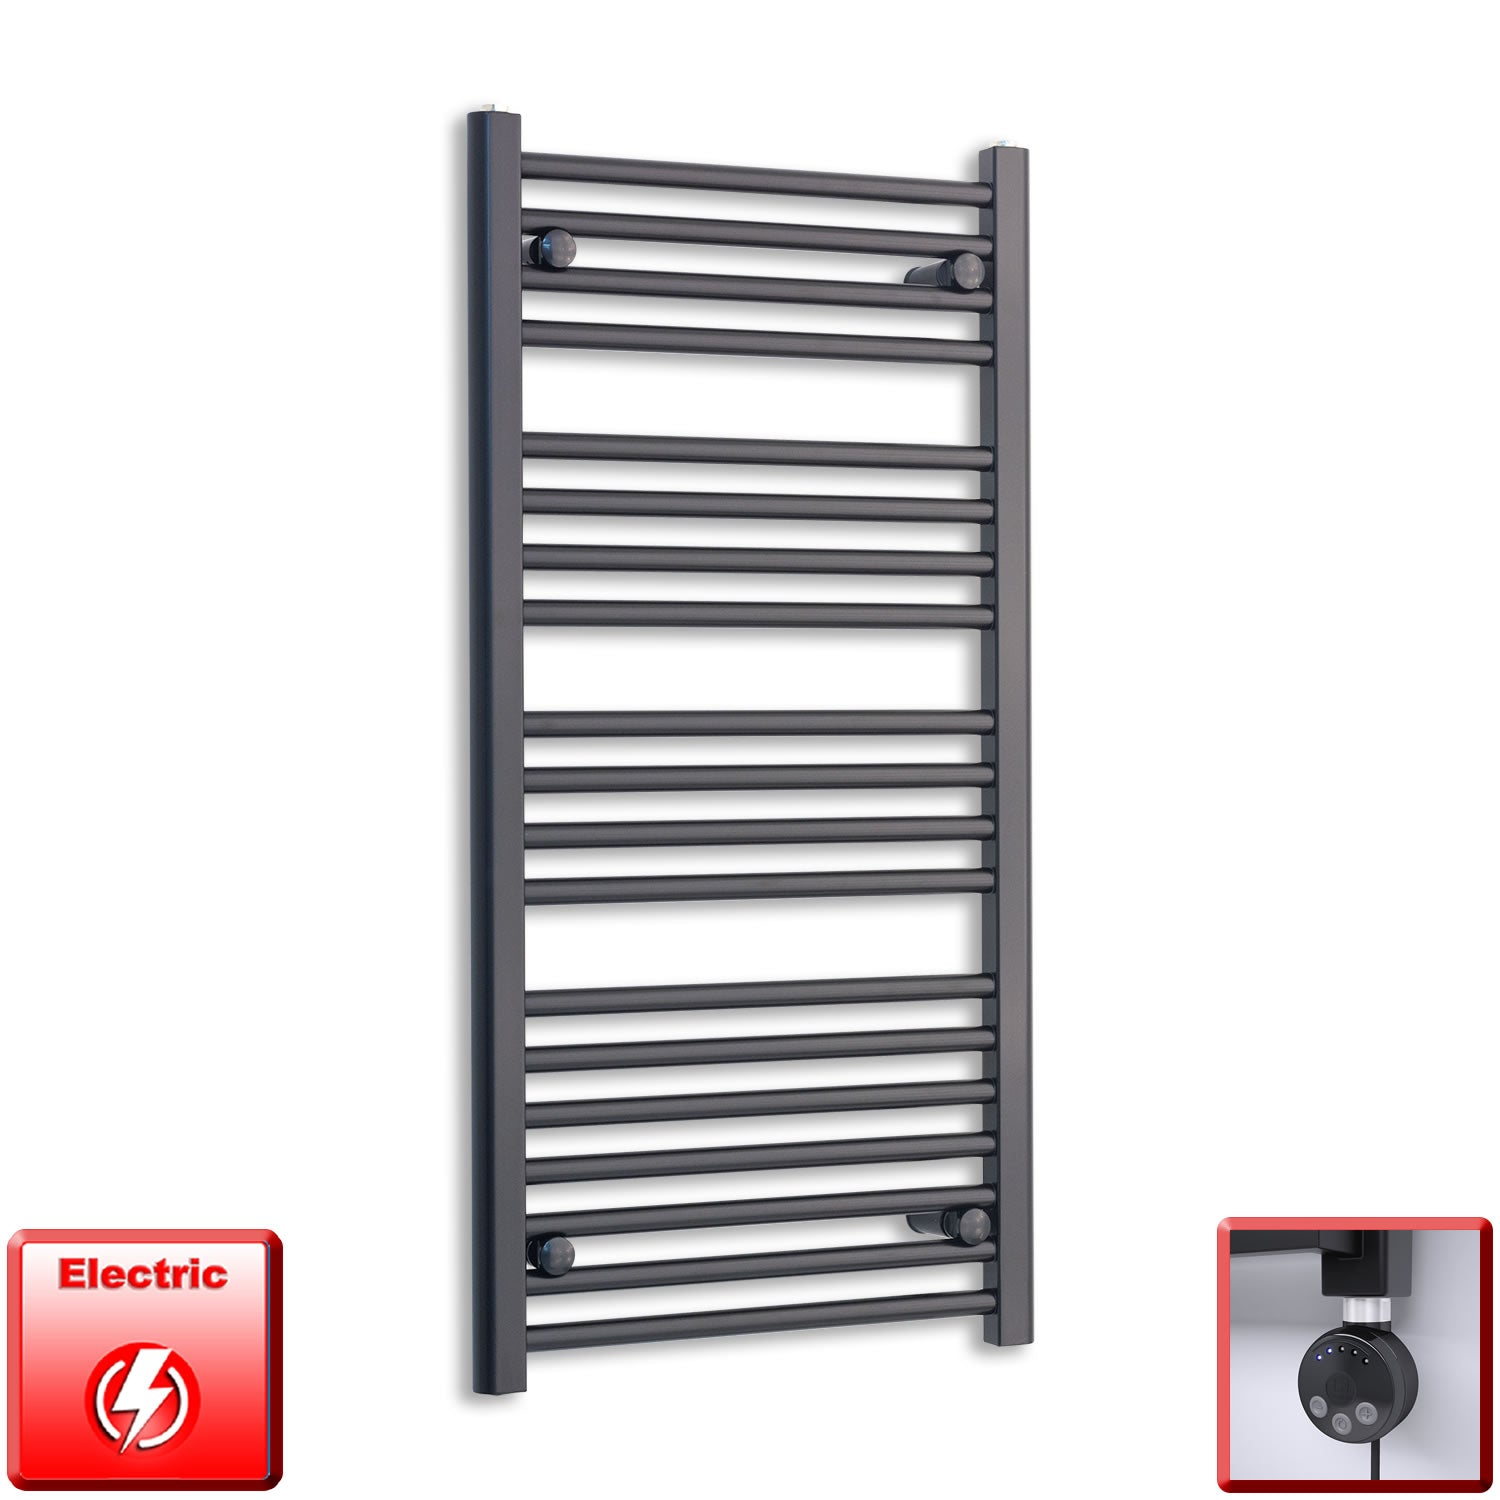 600mm Wide 1000mm High Pre-Filled Black Electric Towel Rail Radiator With Thermostatic MEG Element